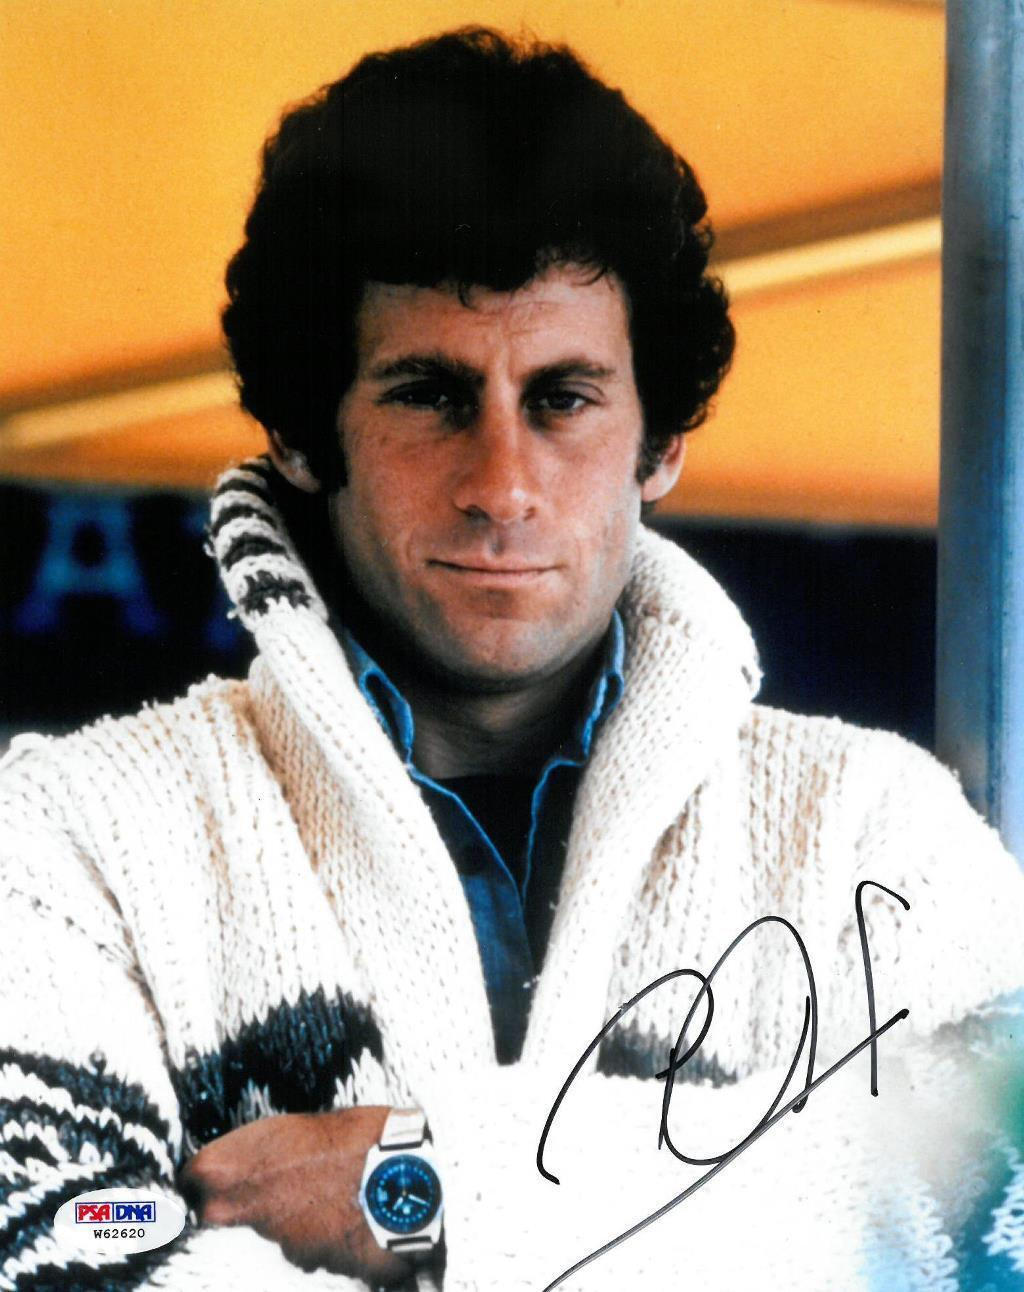 Paul michael glaser signed starsky & hutch autographed 8x10 photo psa/dna coa